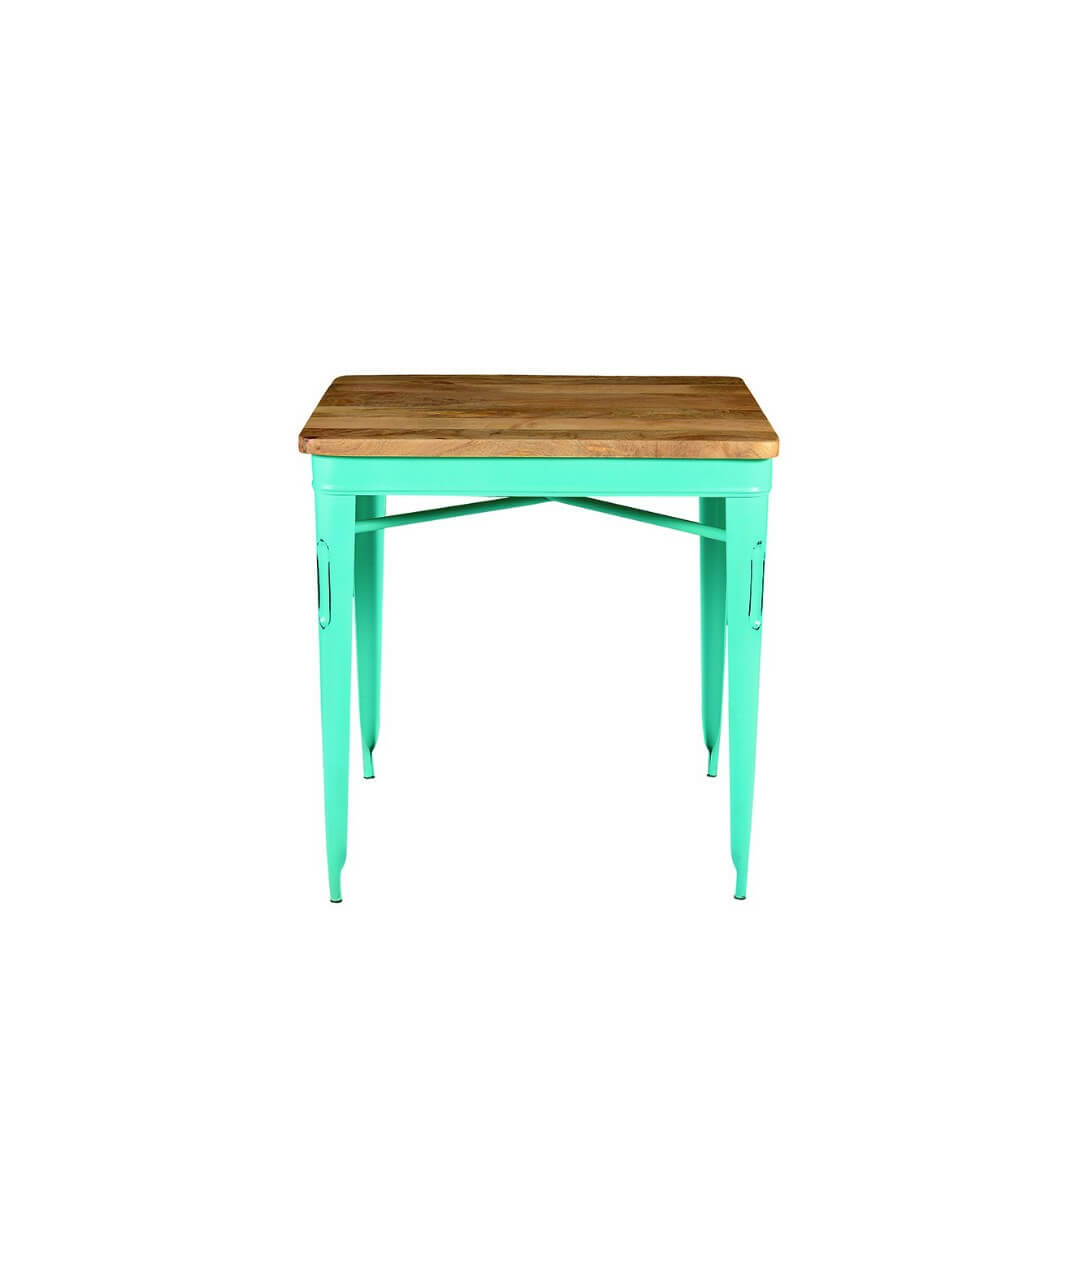 Rajtai High Table With Wooden Top